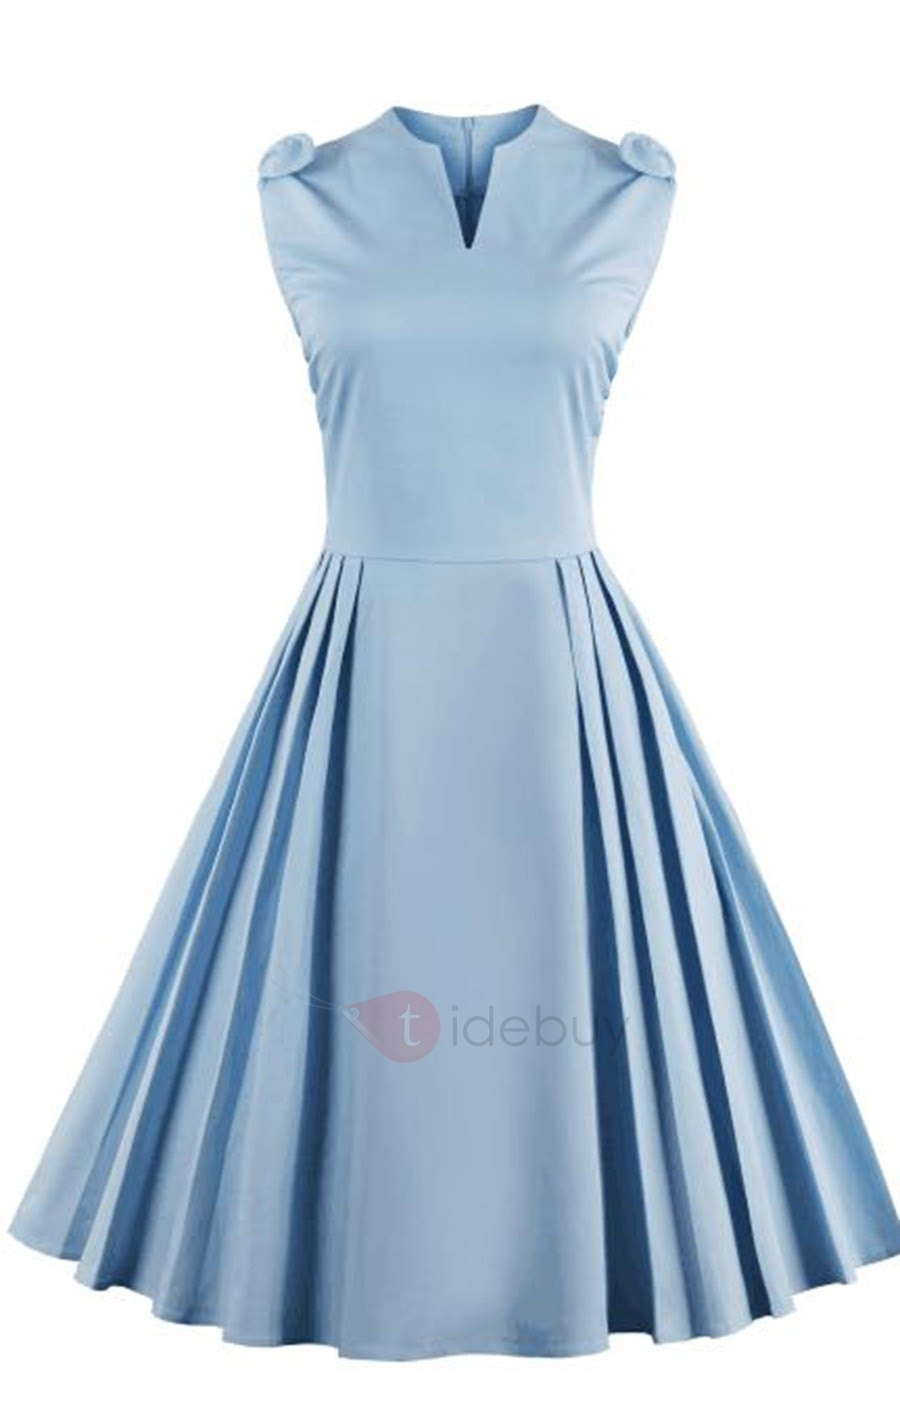 tidebuy light blue ruffled womenu0027s vintage dress : tidebuy.com YGZSLIR